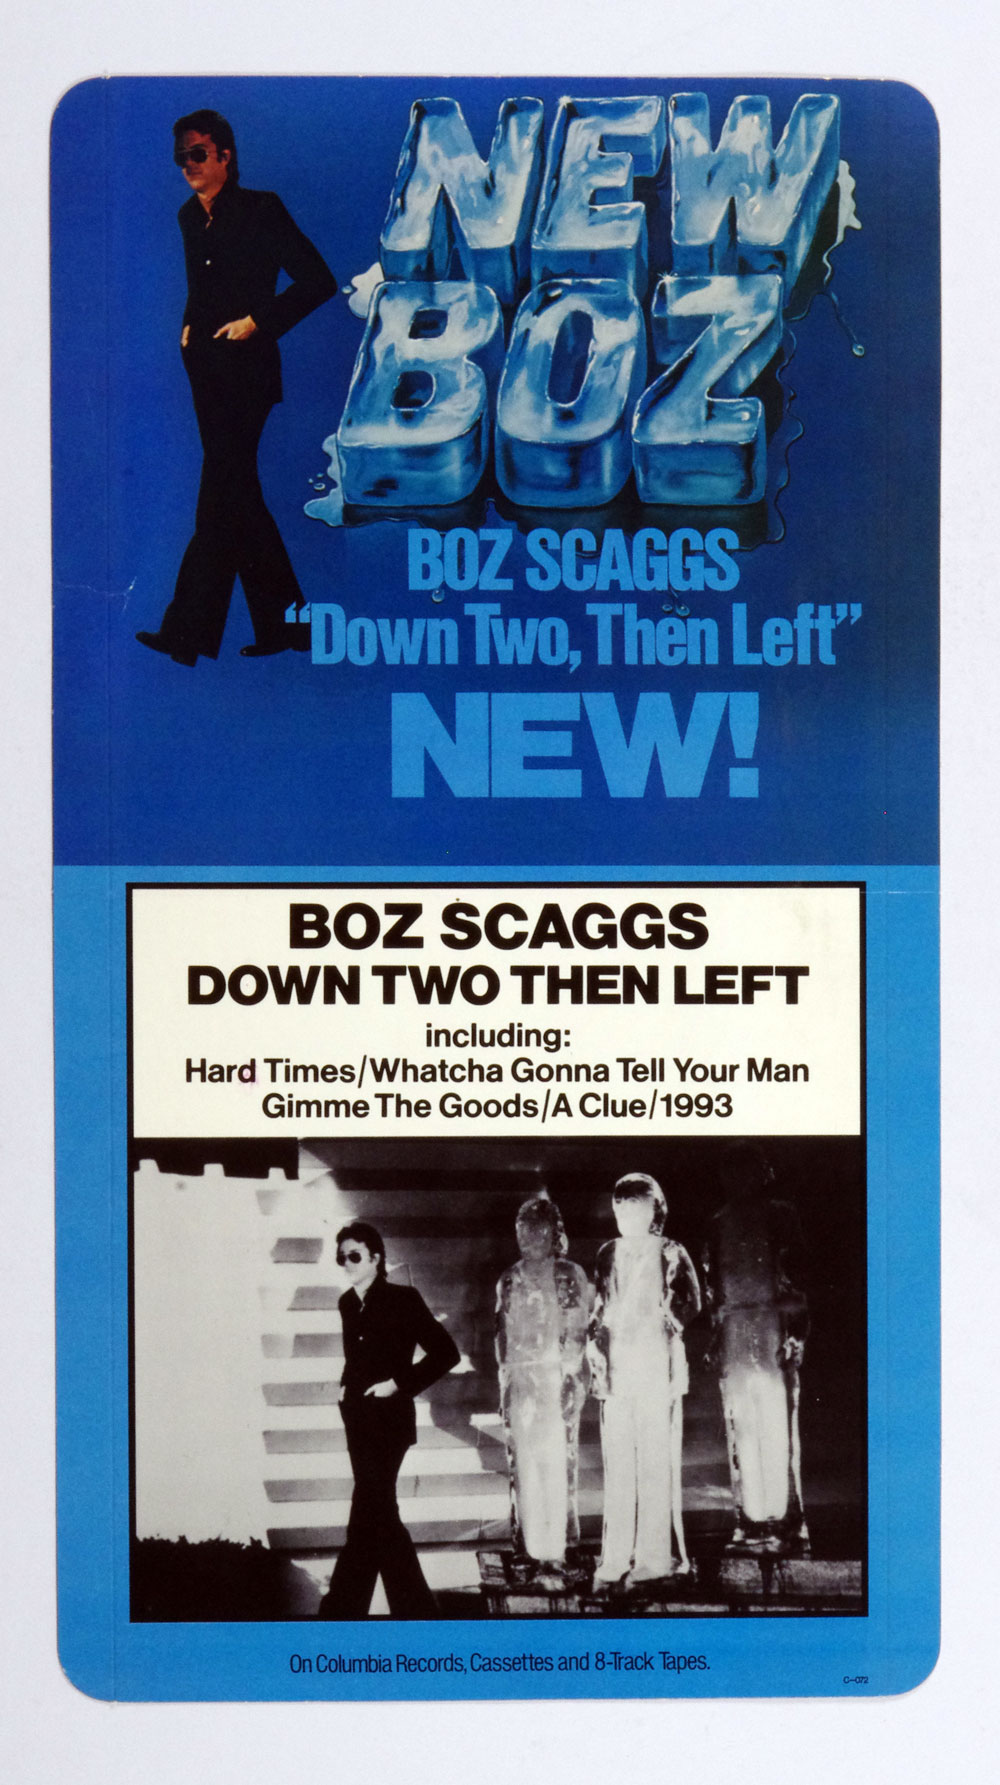 Boz Scaggs Poster Cardboard Down Two Then Left 1977 New Album Promo  12 x 22